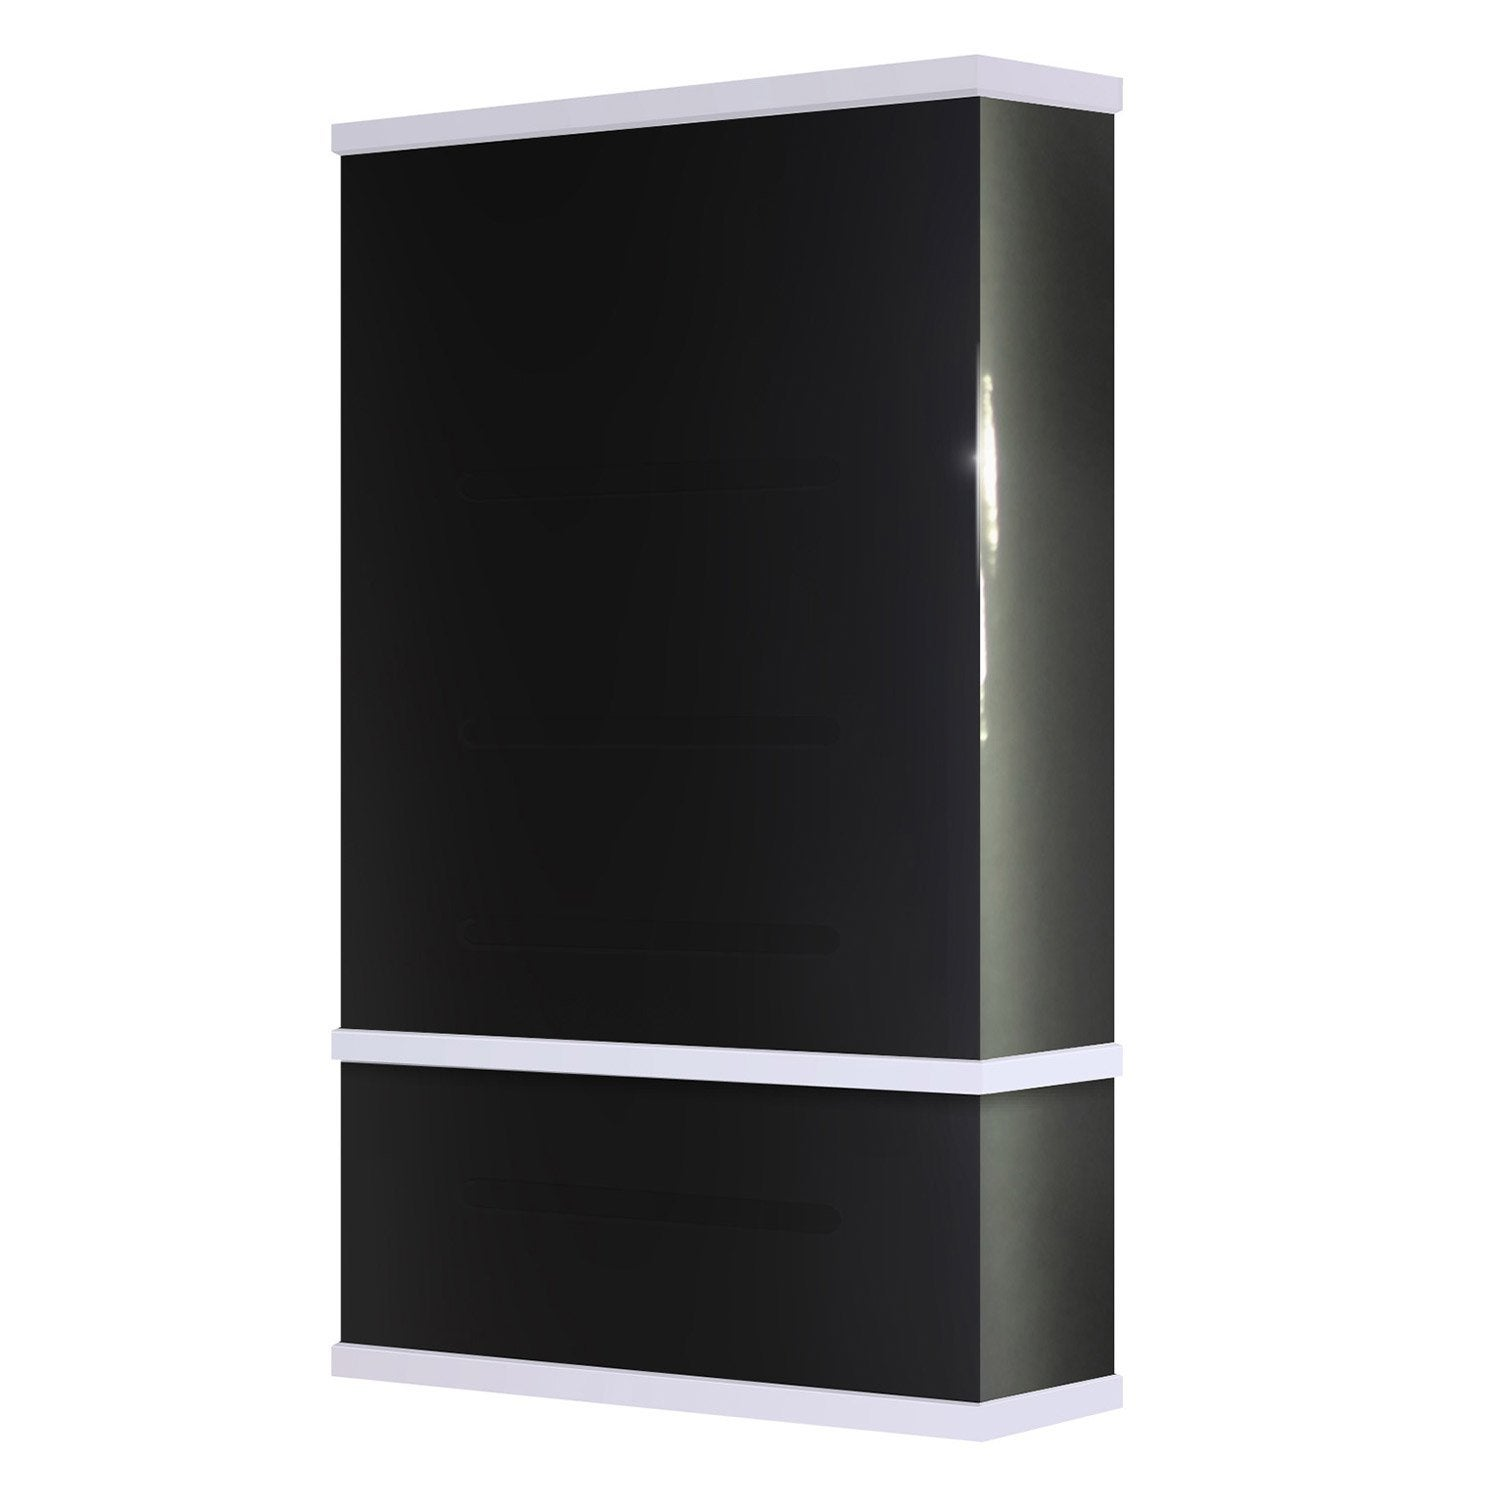 chauffe eau lectrique vertical mural waterslim wts 100 gris anthra 100 l leroy merlin. Black Bedroom Furniture Sets. Home Design Ideas